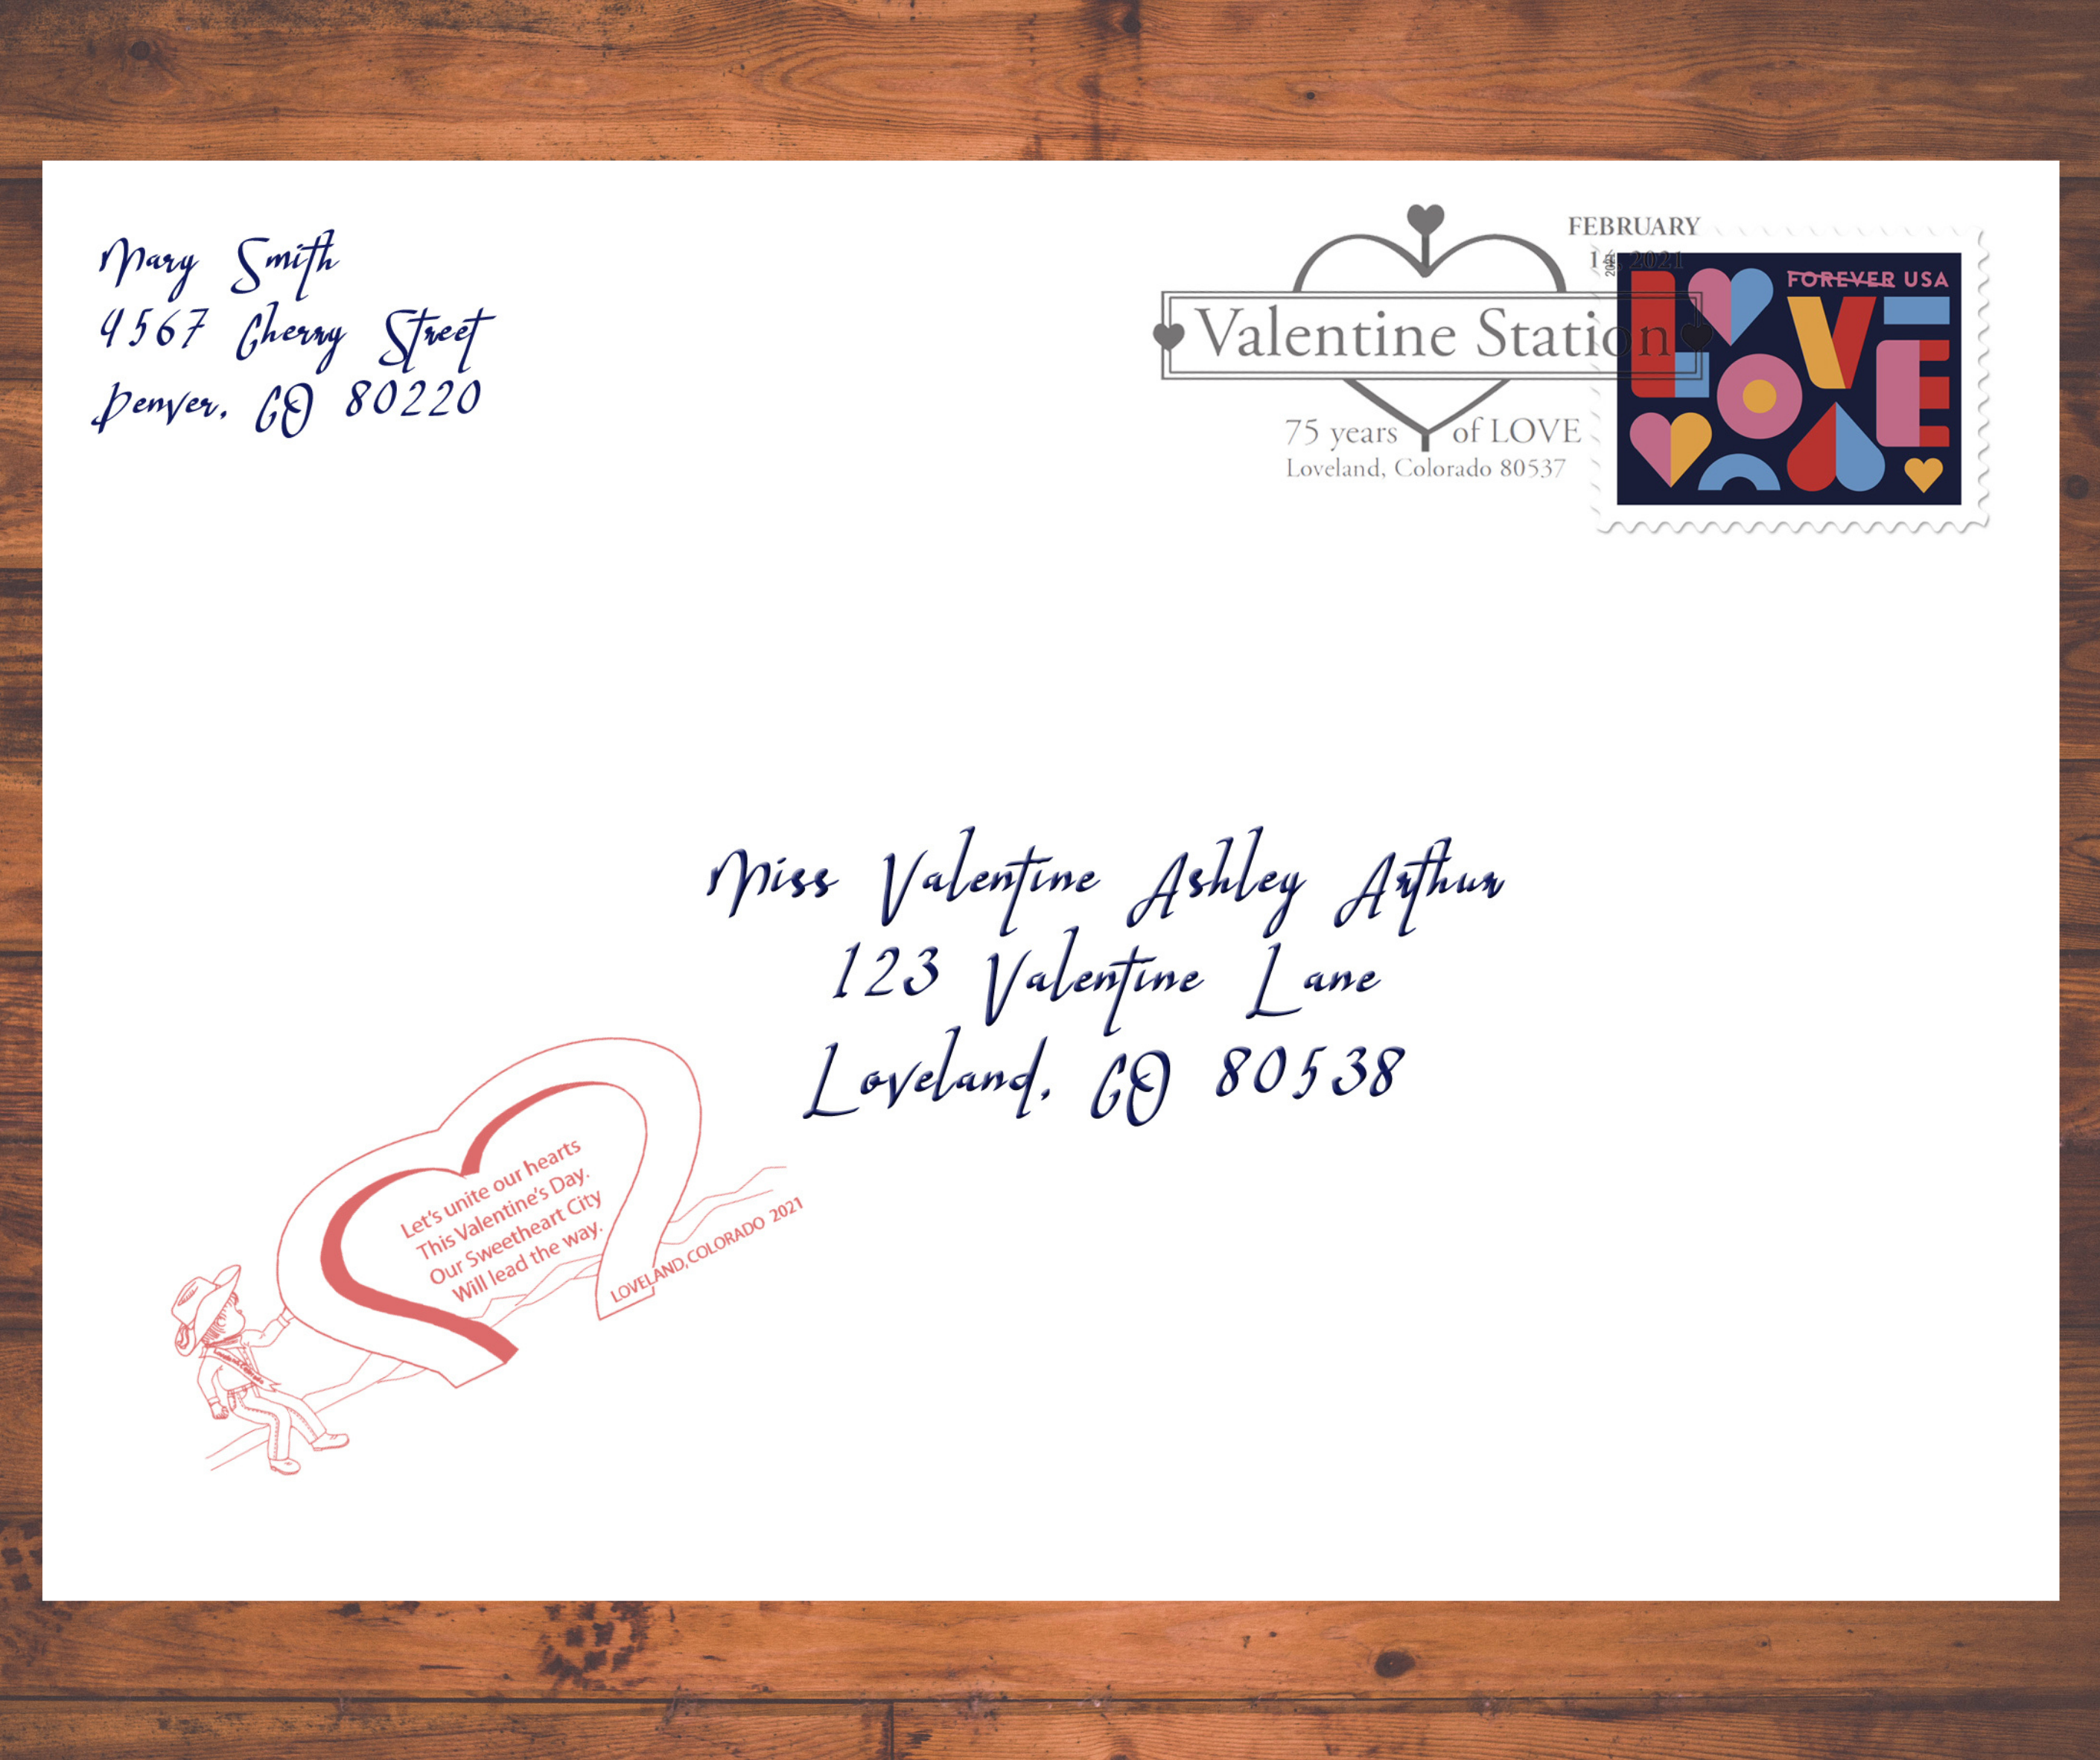 This sample valentine shows the unique Loveland cachet stamp (bottom left) and postmark (top right) that are stamped on every valentine that comes through the Loveland Valentine Re-Mailing Program.